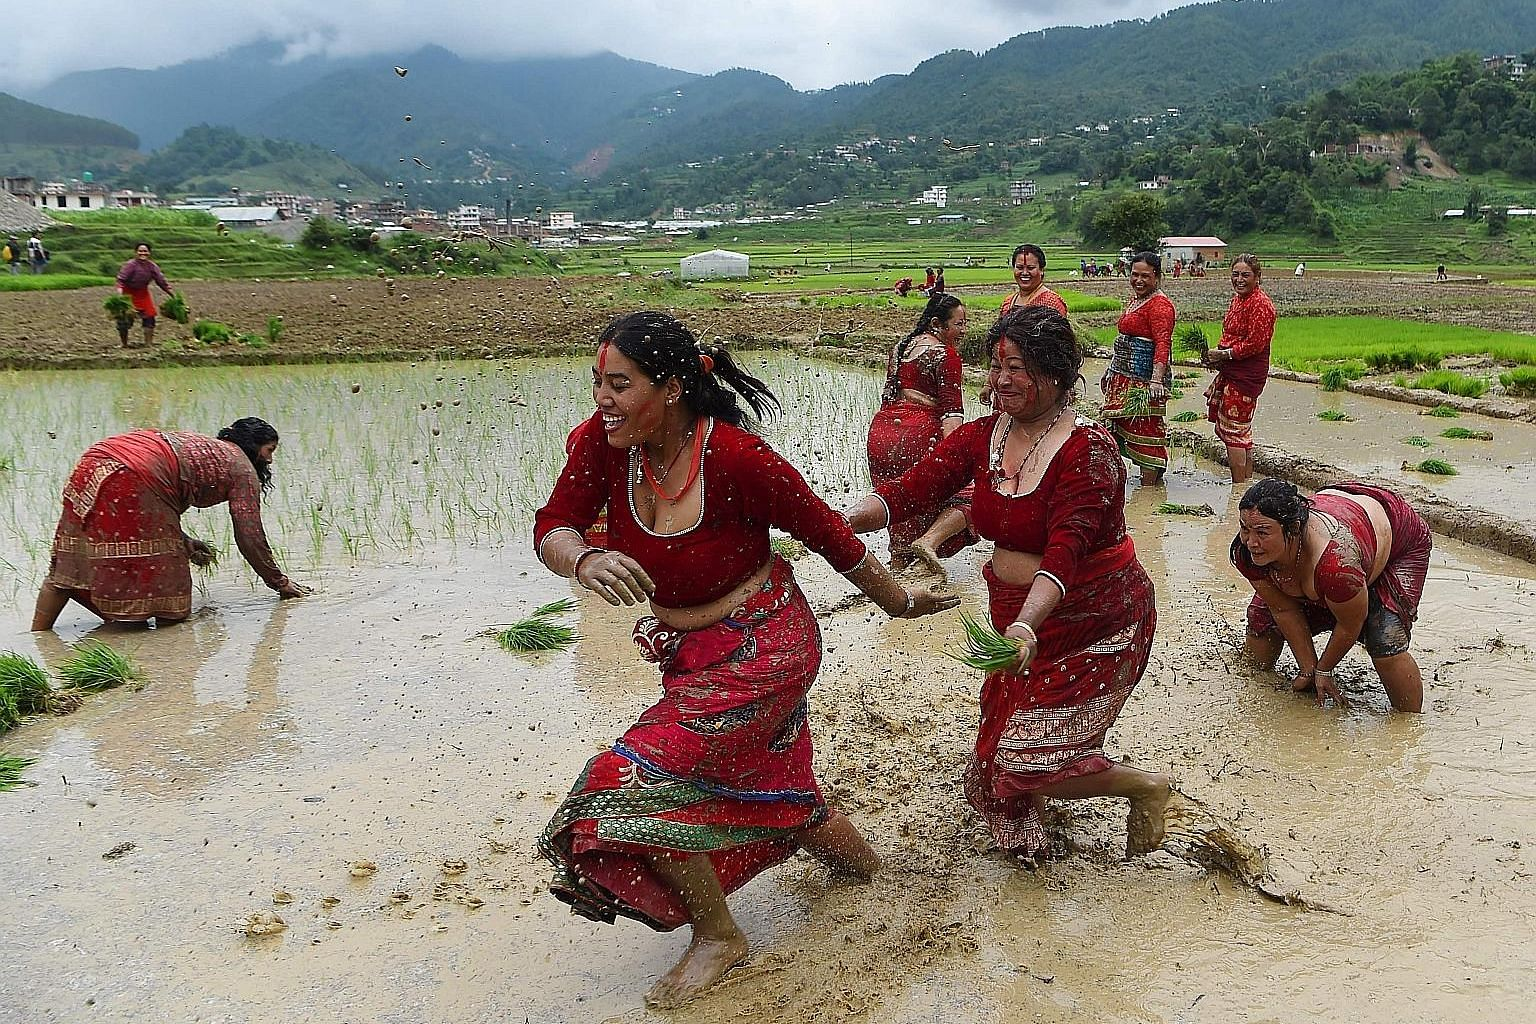 Nepali farmers splashing mud on one another in a rice field during National Paddy Day in Lele village on the outskirts of Kathmandu yesterday. Farmers in Nepal celebrate National Paddy Day as the annual rice-planting season begins.